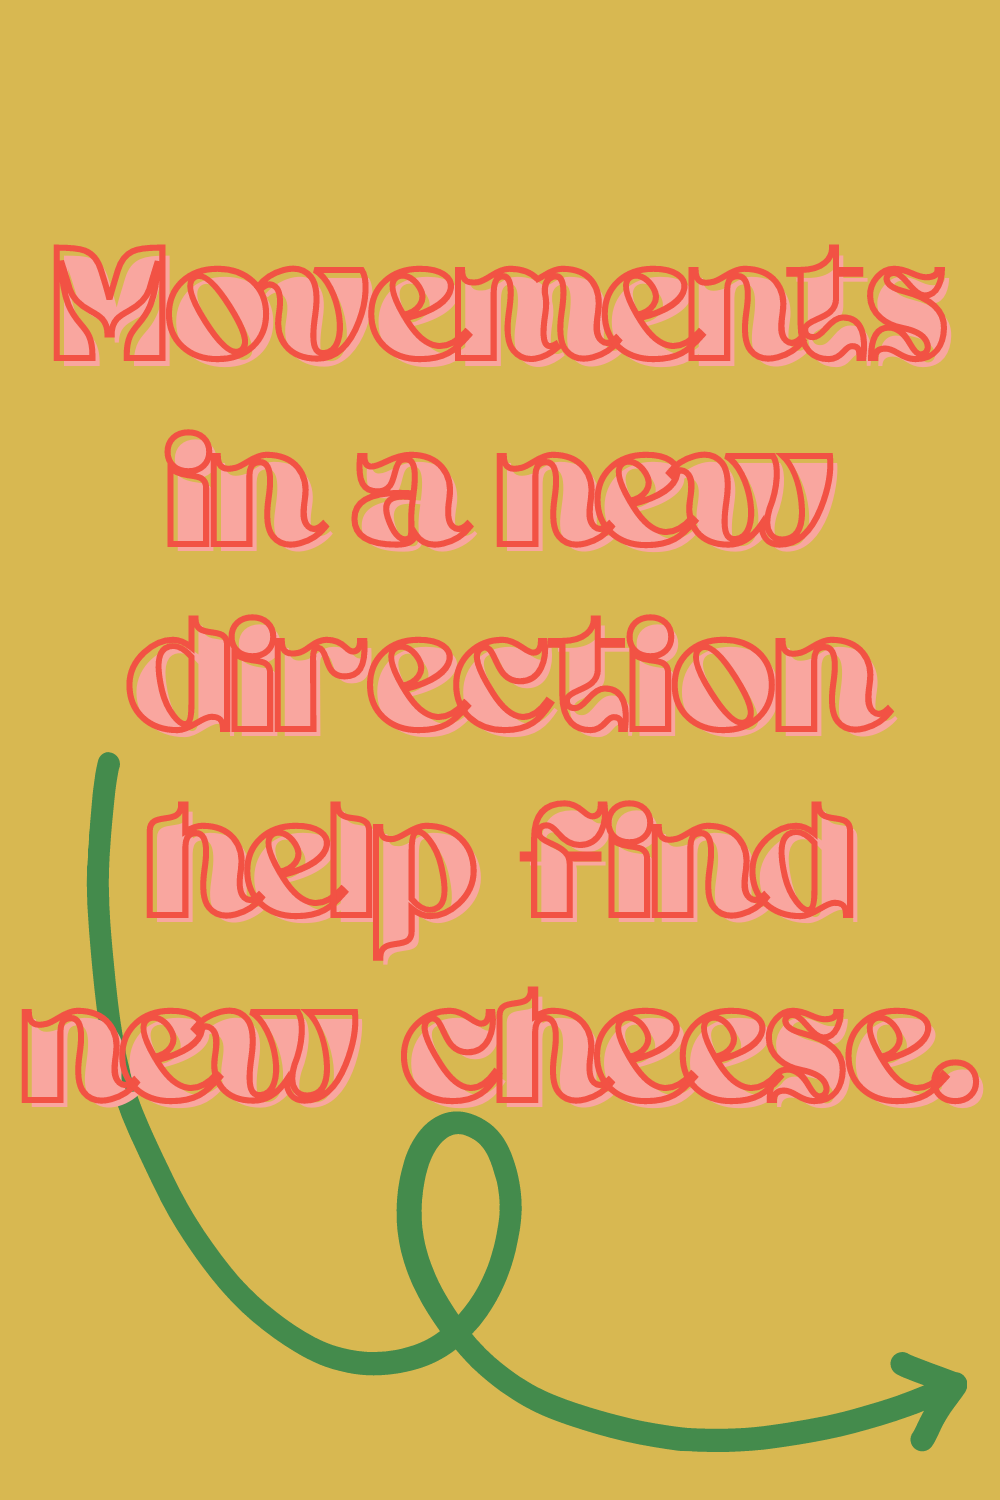 Inspirational Who Moved My Cheese Quotes